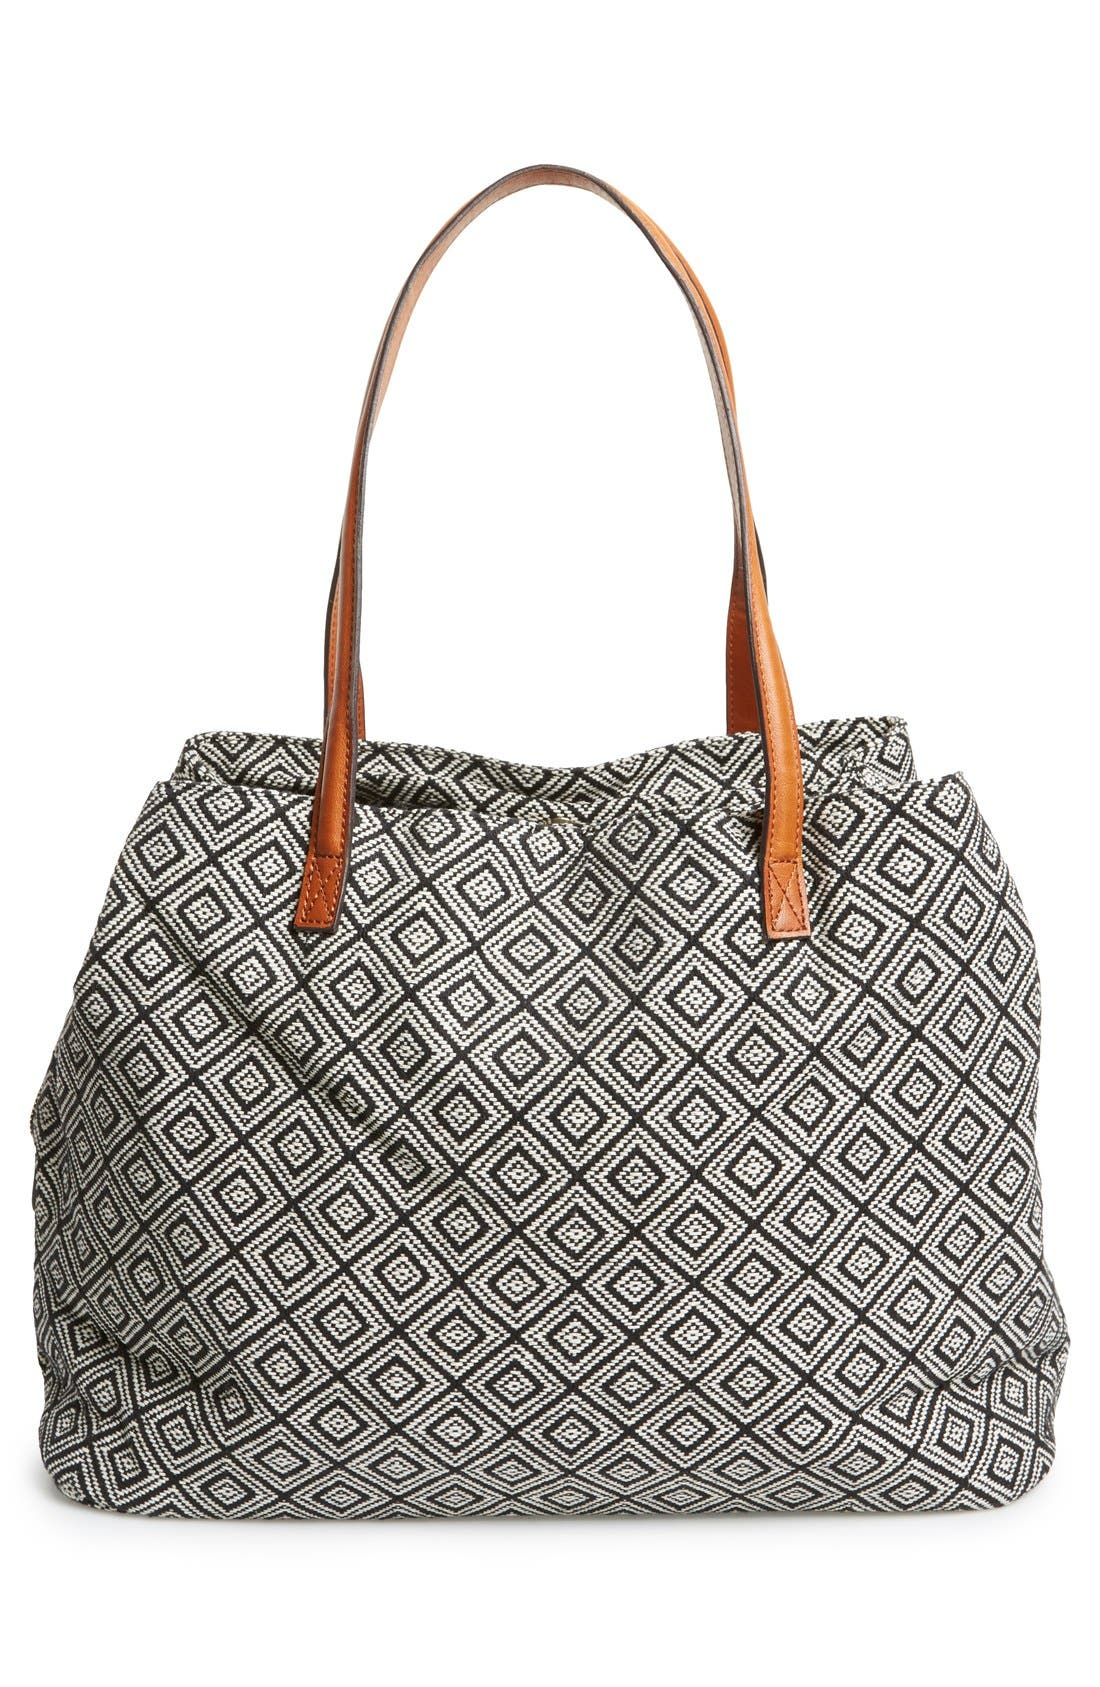 'Oversize Millie' Tote,                             Alternate thumbnail 3, color,                             Black White Geo